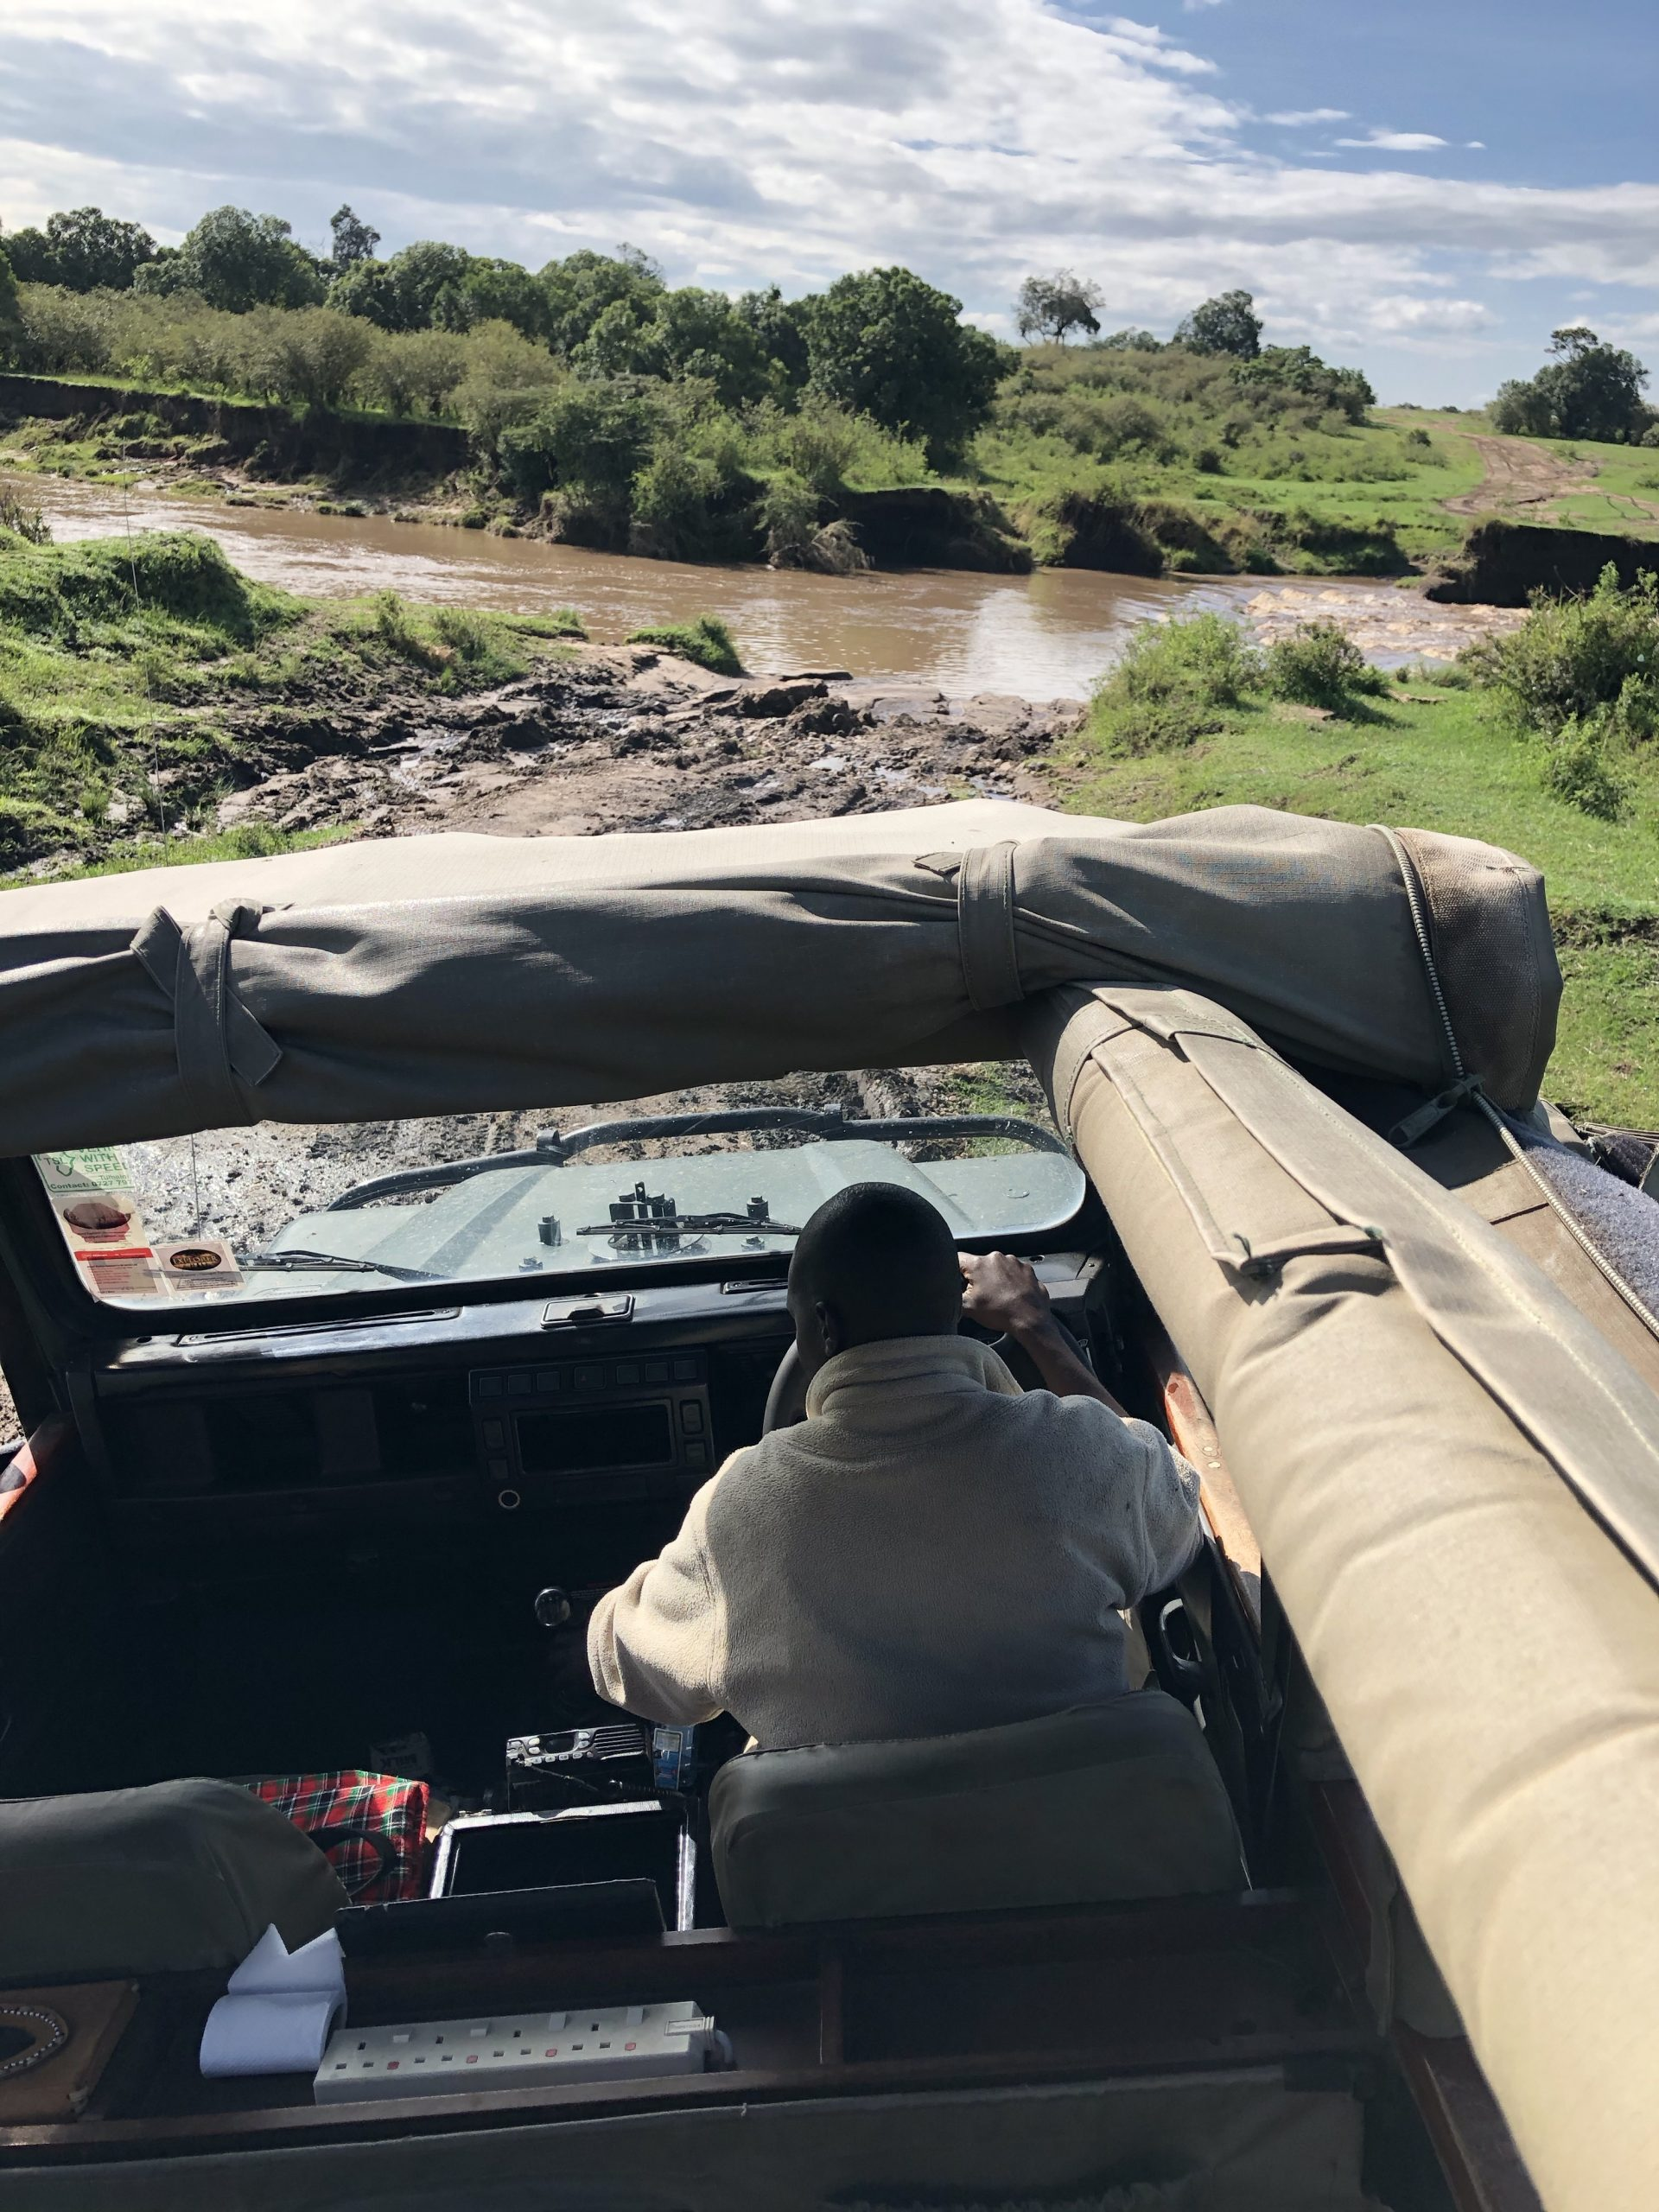 creek view from within Safari jeep